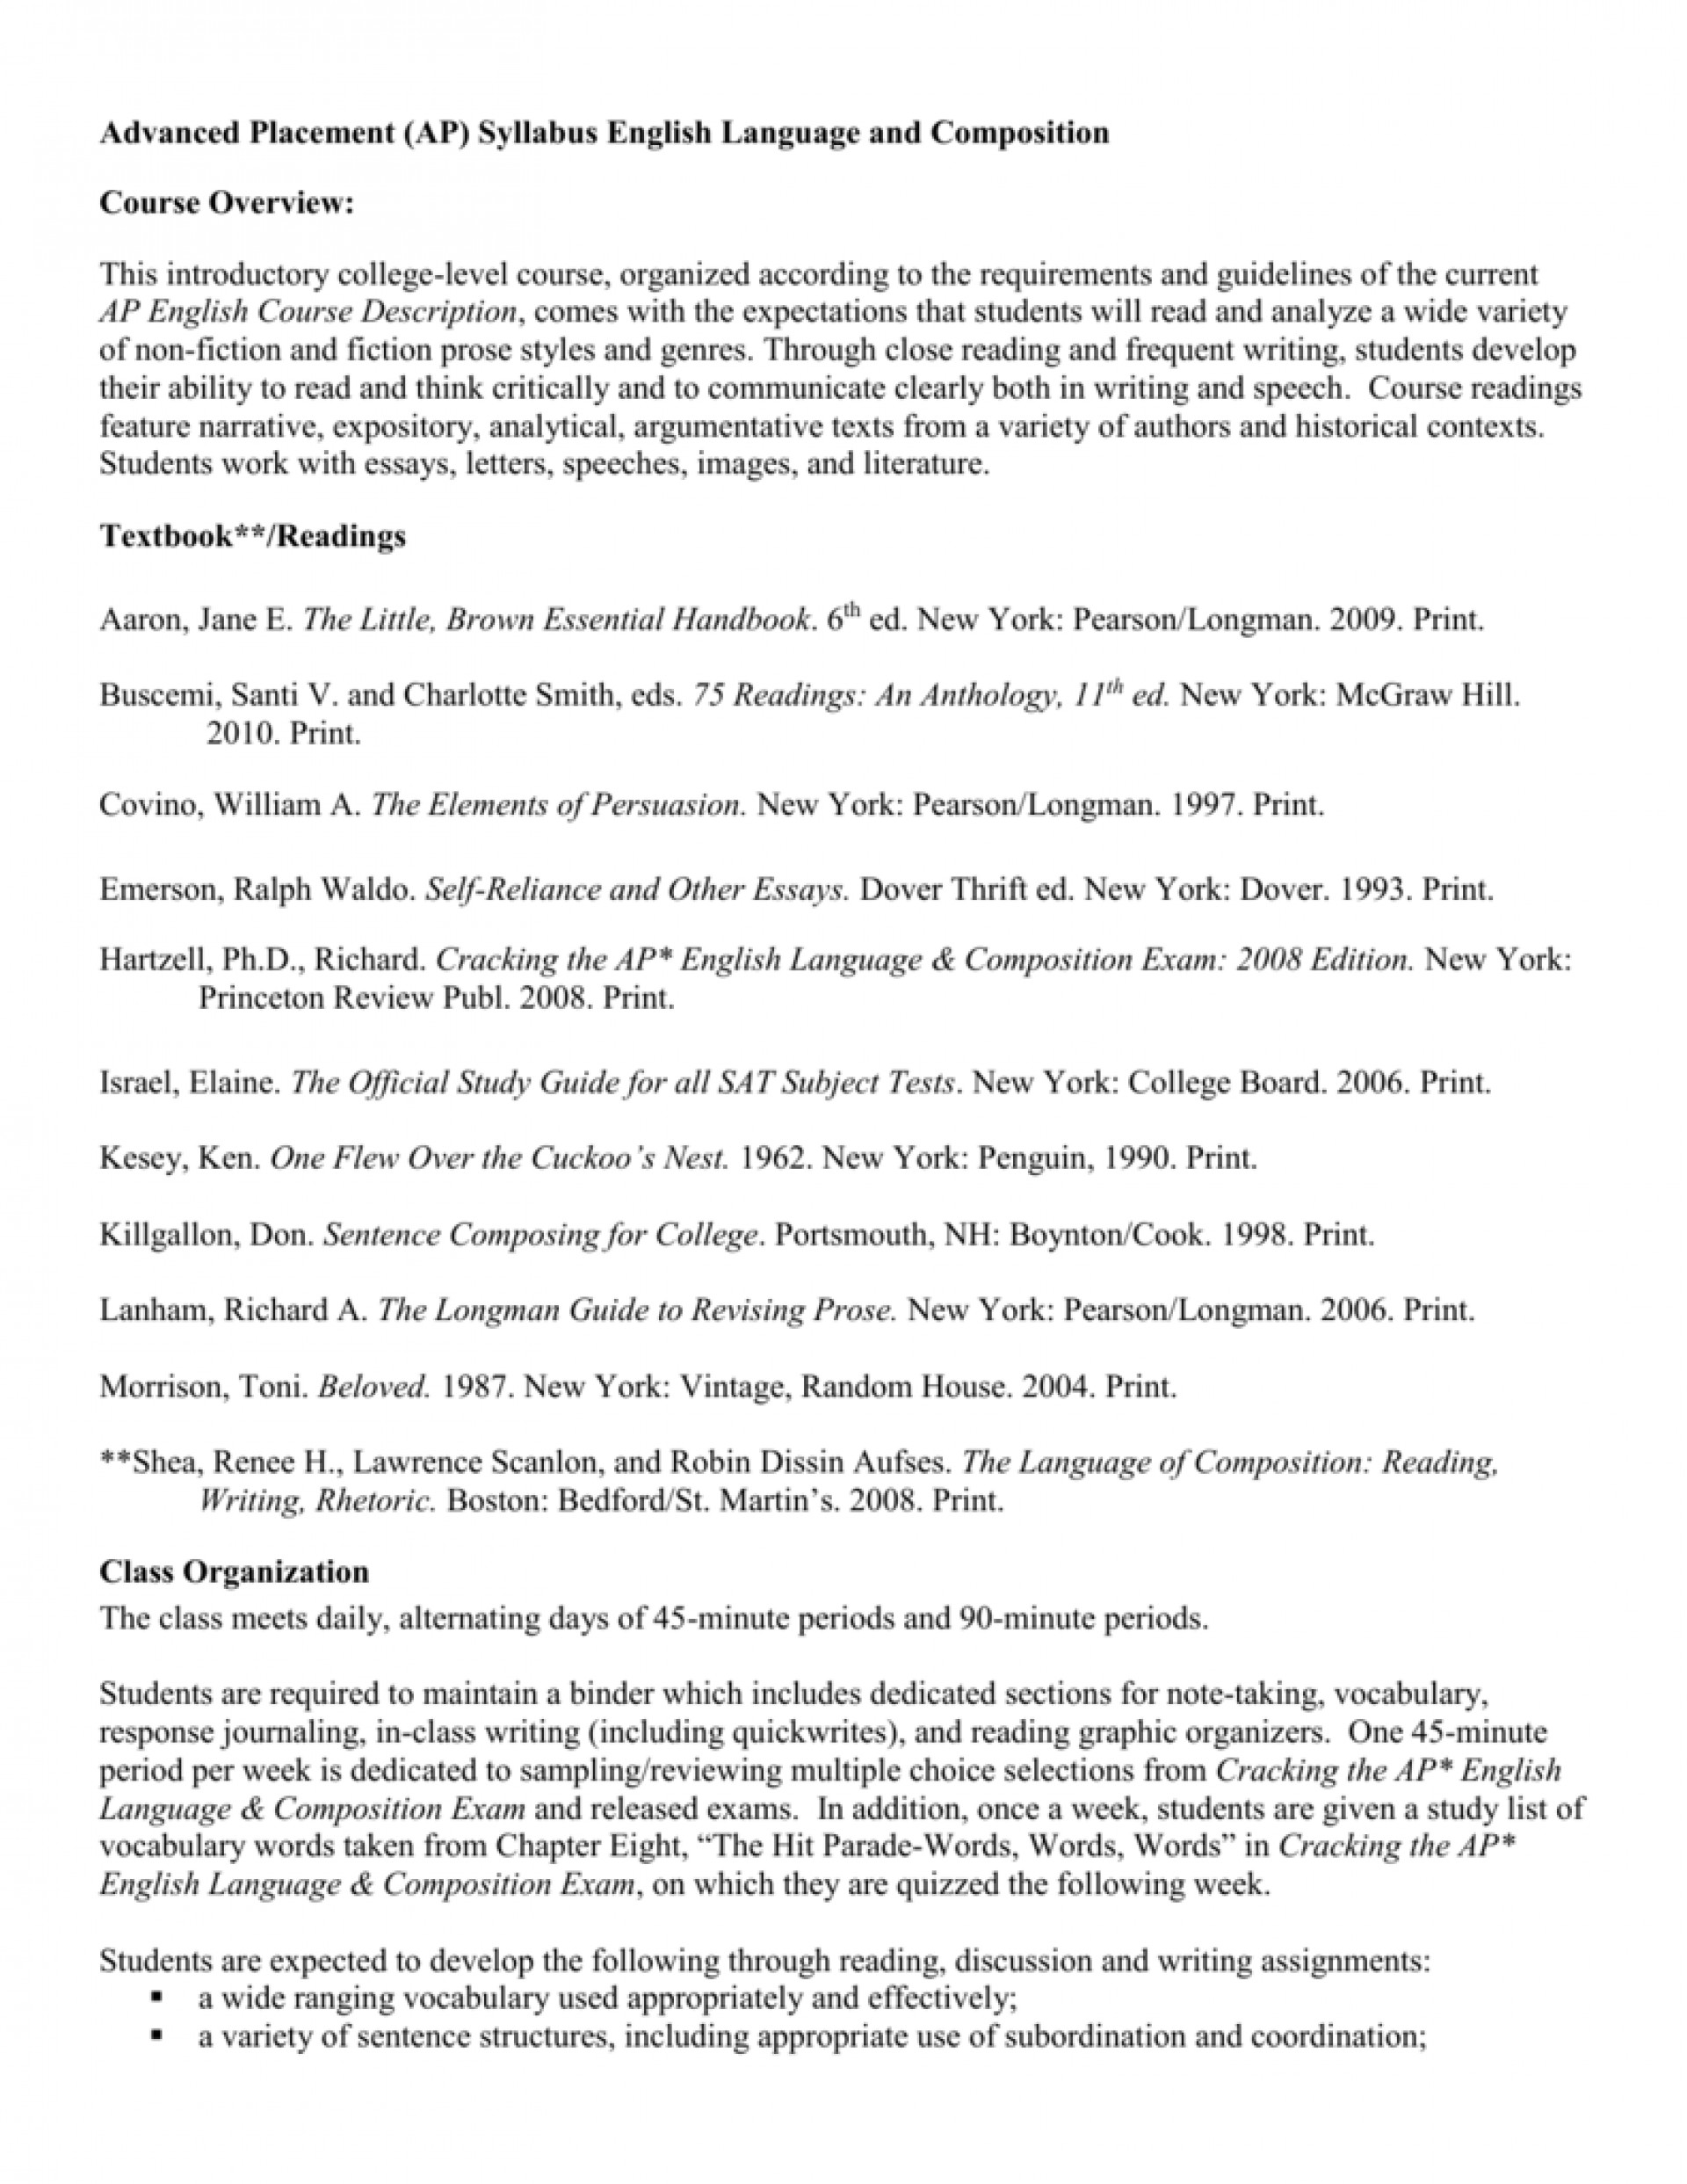 010 Ap Lang Synthesisy Prompt Research Paper Service College Board Prompts 008033003 1 Us History Writing Argumentative Sat Literature Fearsome Synthesis Essay 2017 Locavore Examples 1920